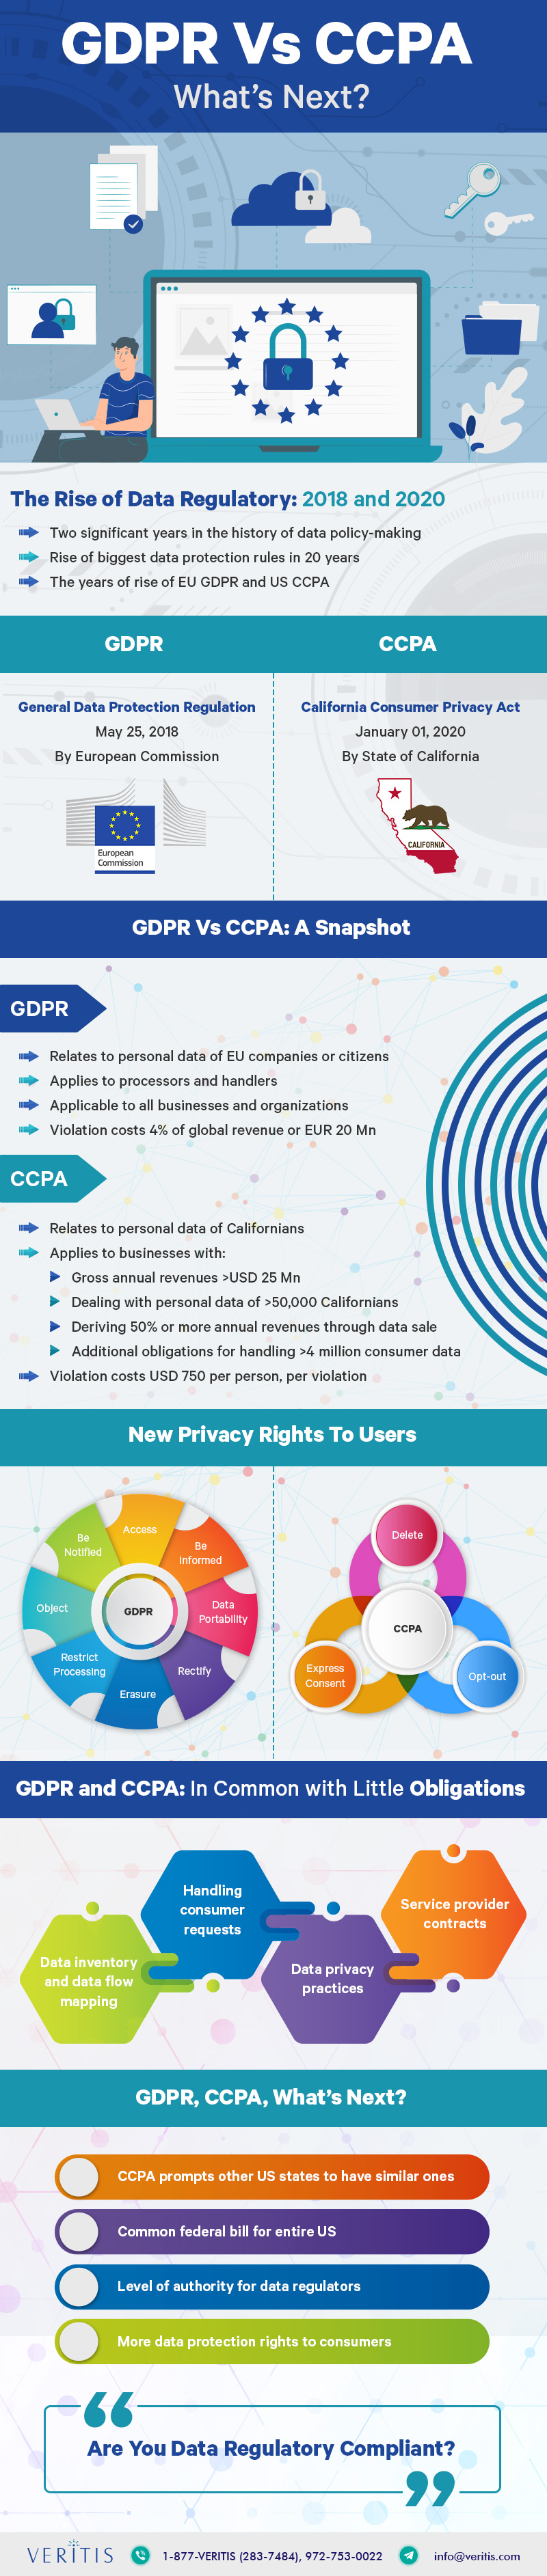 CCPA vs GDPR Compliance Guide [Infographic]